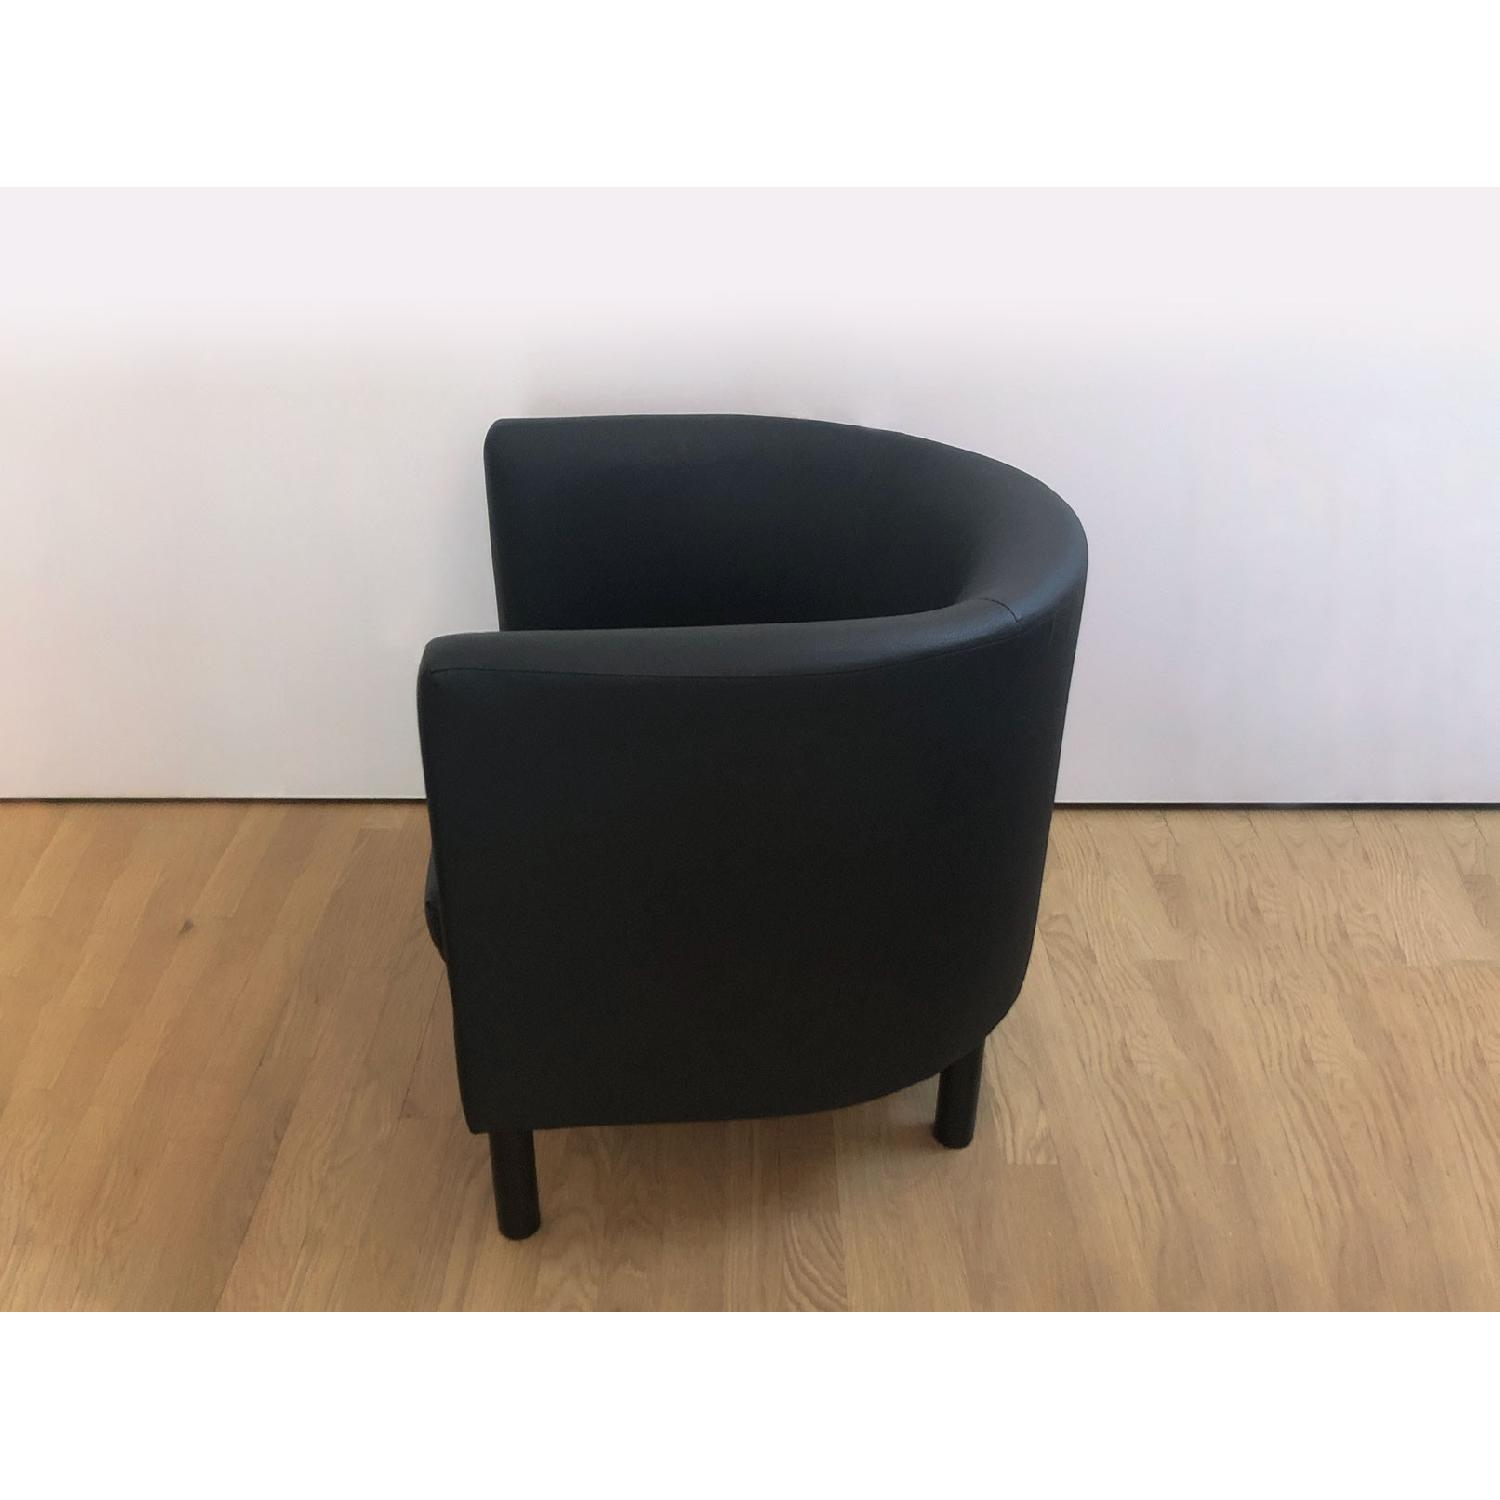 Ikea Black Faux Leather Armchairs - image-2